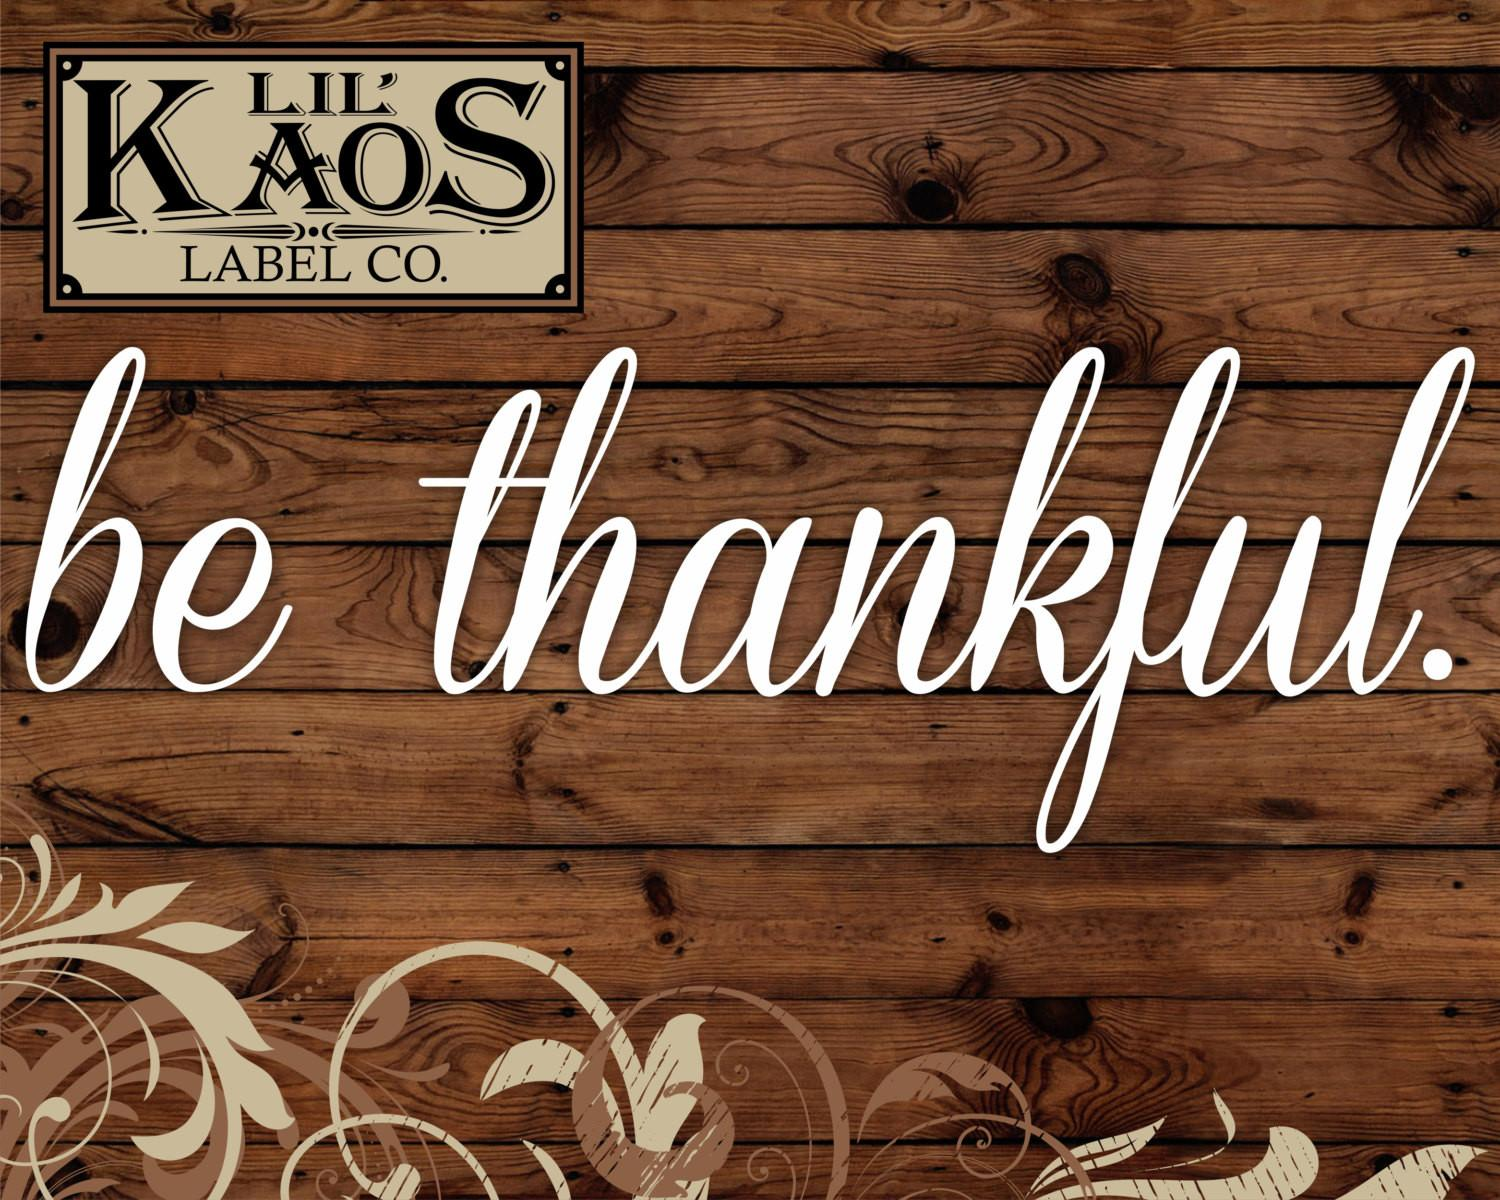 Thankful Vinyl Decal Sticker Rustic Wood Sign Diy